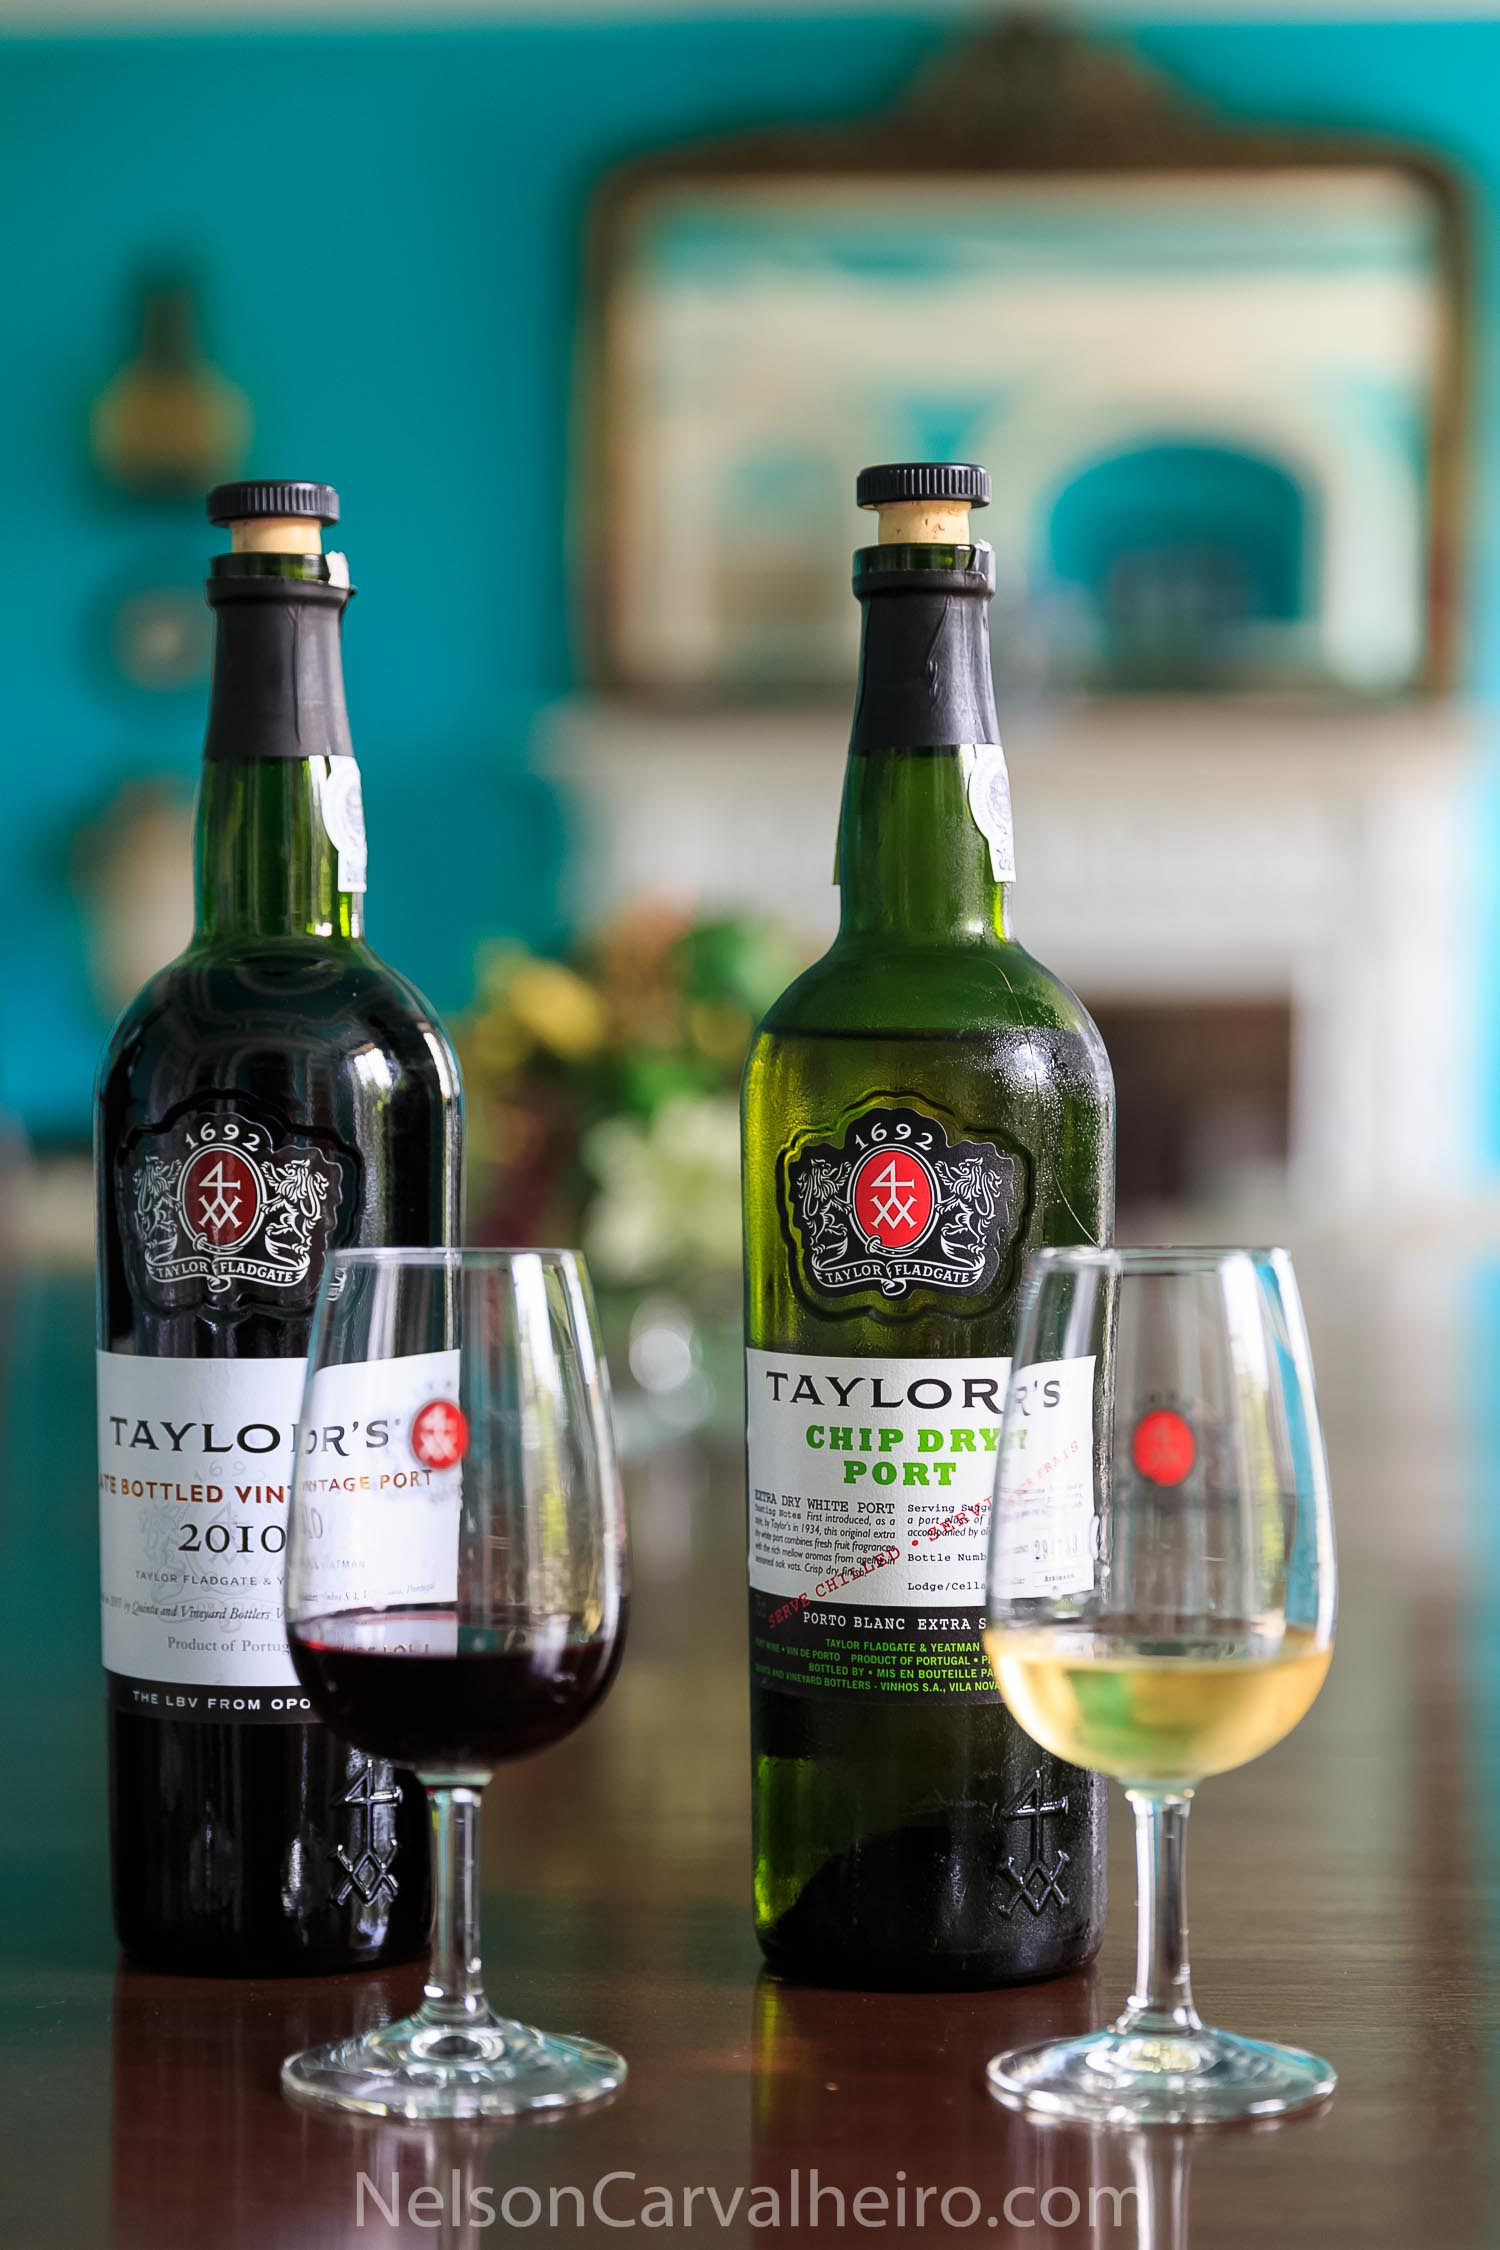 Nelson_Carvalheiro_Portuguese_Taylors_Port_Wine-5